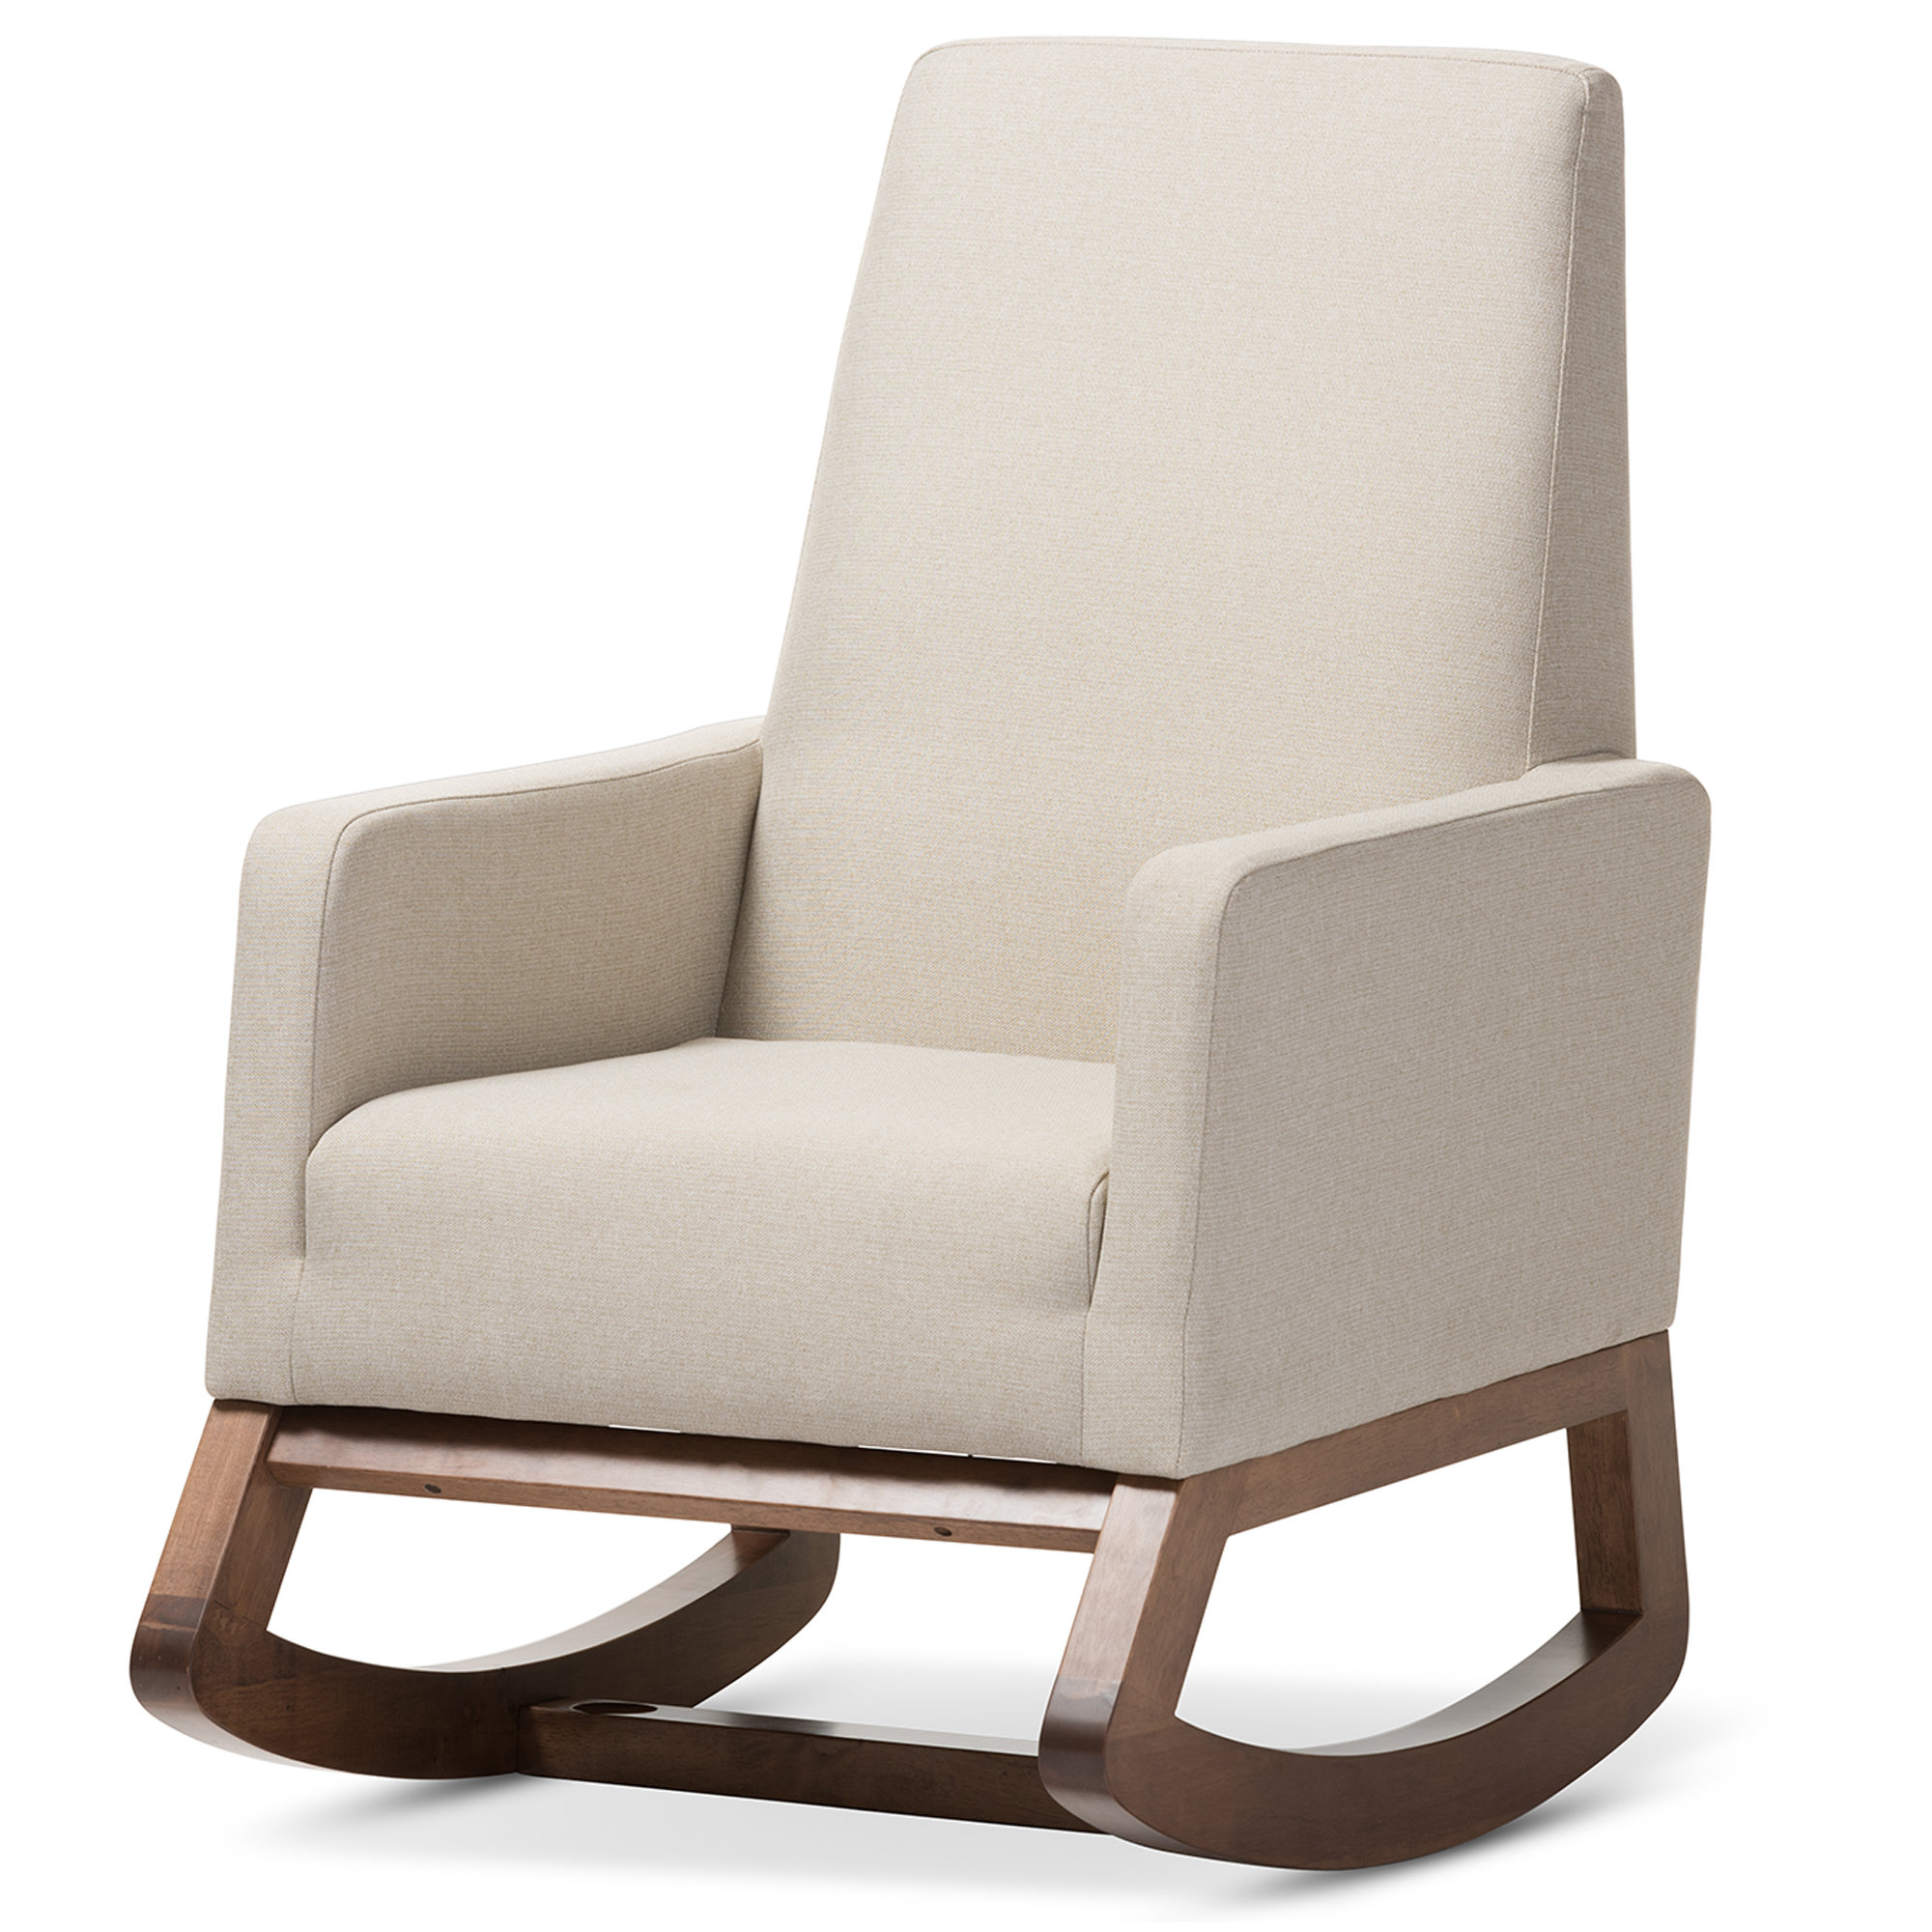 Inspiration about Modern & Contemporary Nola Rocking Chair | Allmodern Inside Rocking Chairs In Linen Fabric With Brushed Finish Base (#7 of 20)